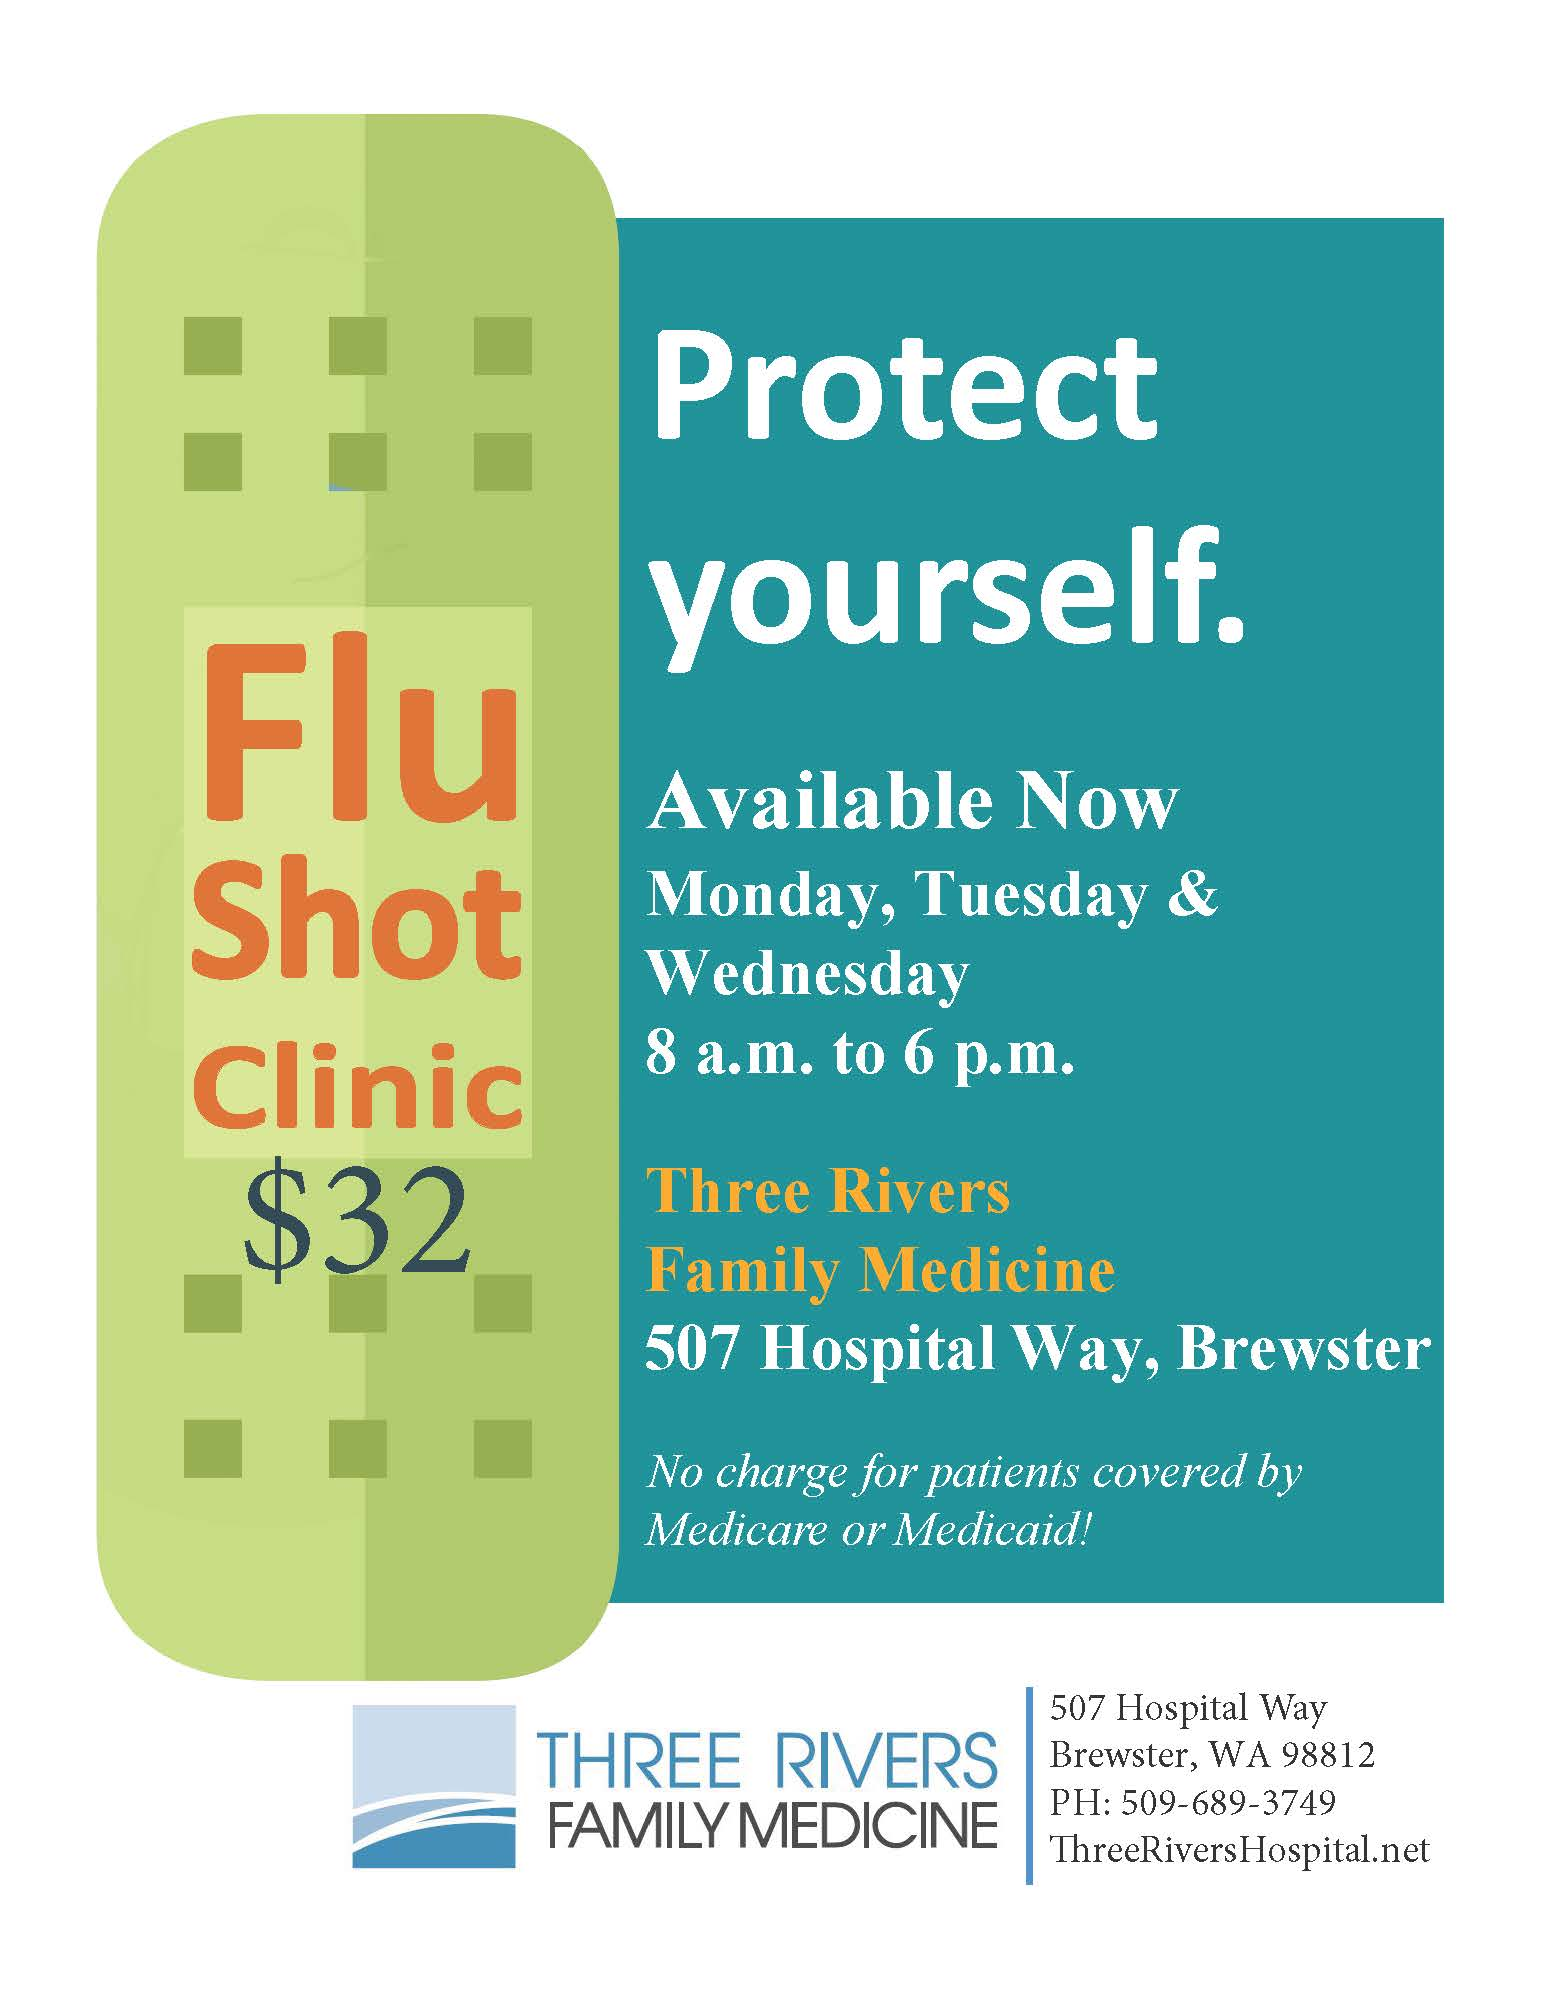 Flu Vaccine Flyers Free: Flu Shots Available Now!